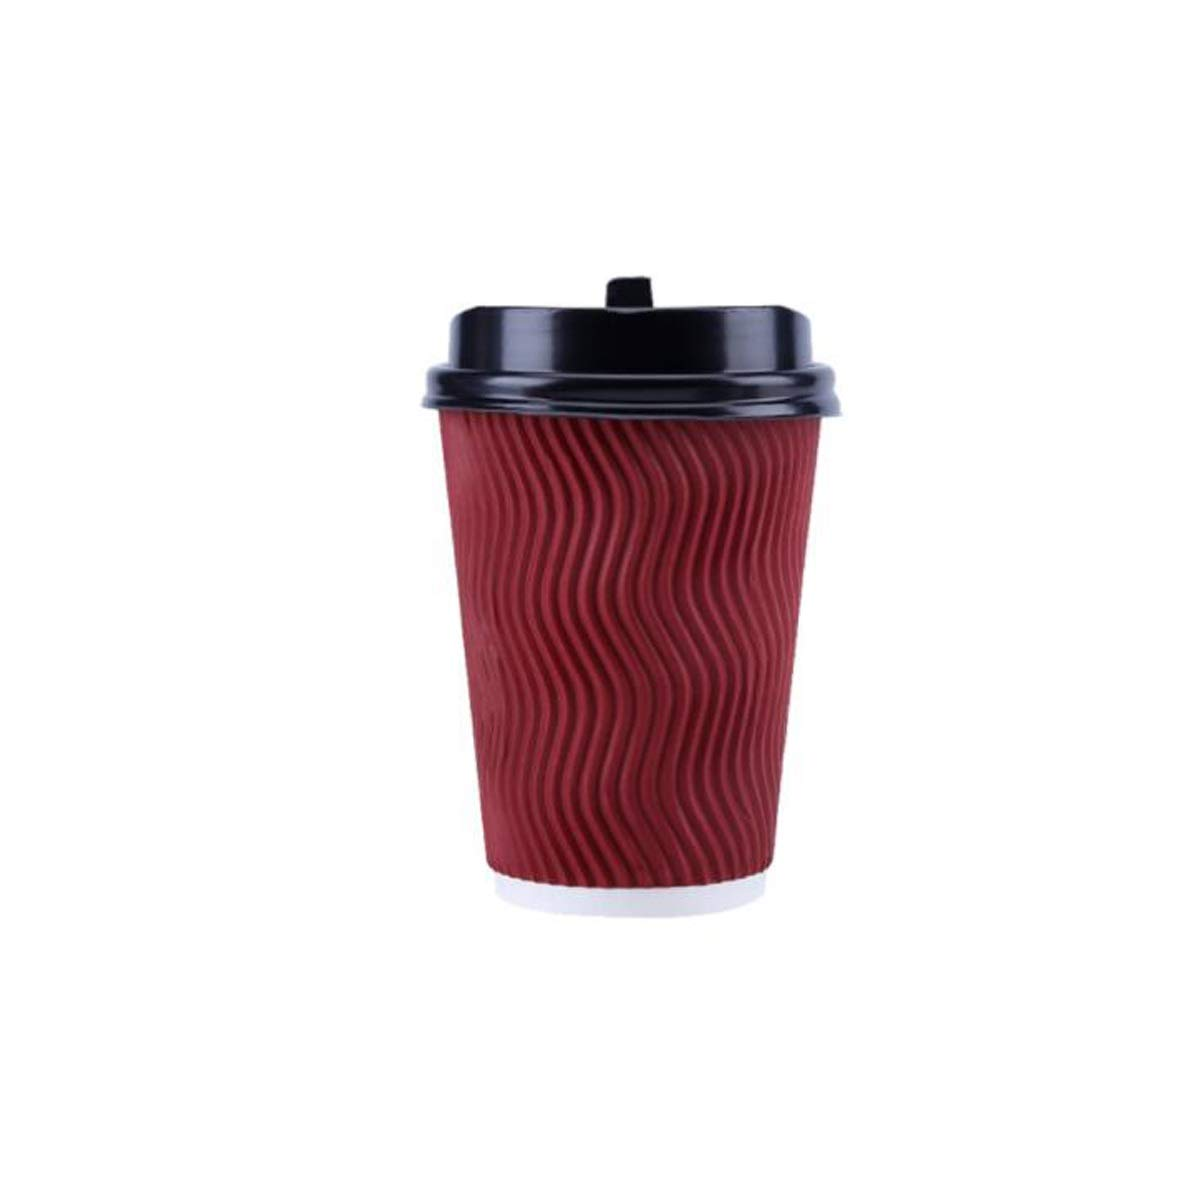 Xionghaizi Disposable Thickened Coffee Cup, 12 Oz 340ml, 16 Packs/Pack, 16 Oz 450ml, 20 Packs/Pack, Double Corrugated Cup Tea Cup, with Lid (Capacity : 450ml)